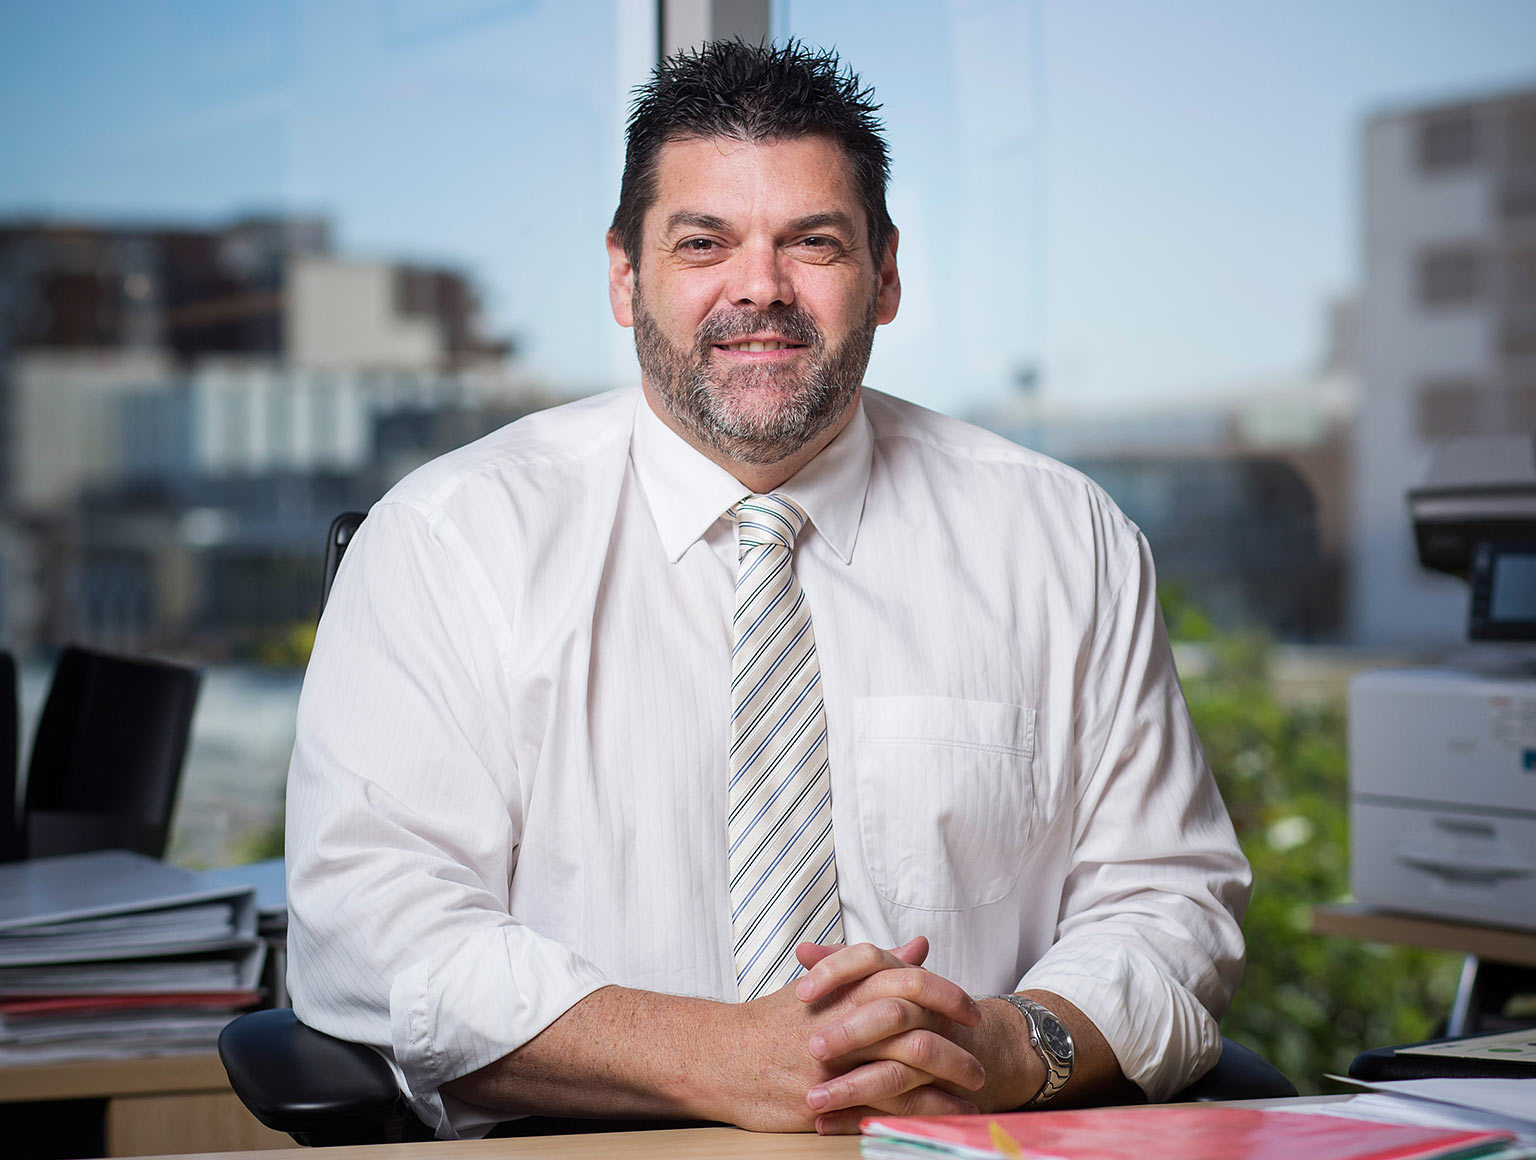 A man in a business shirt and tie sitting in and office with a city view behind him